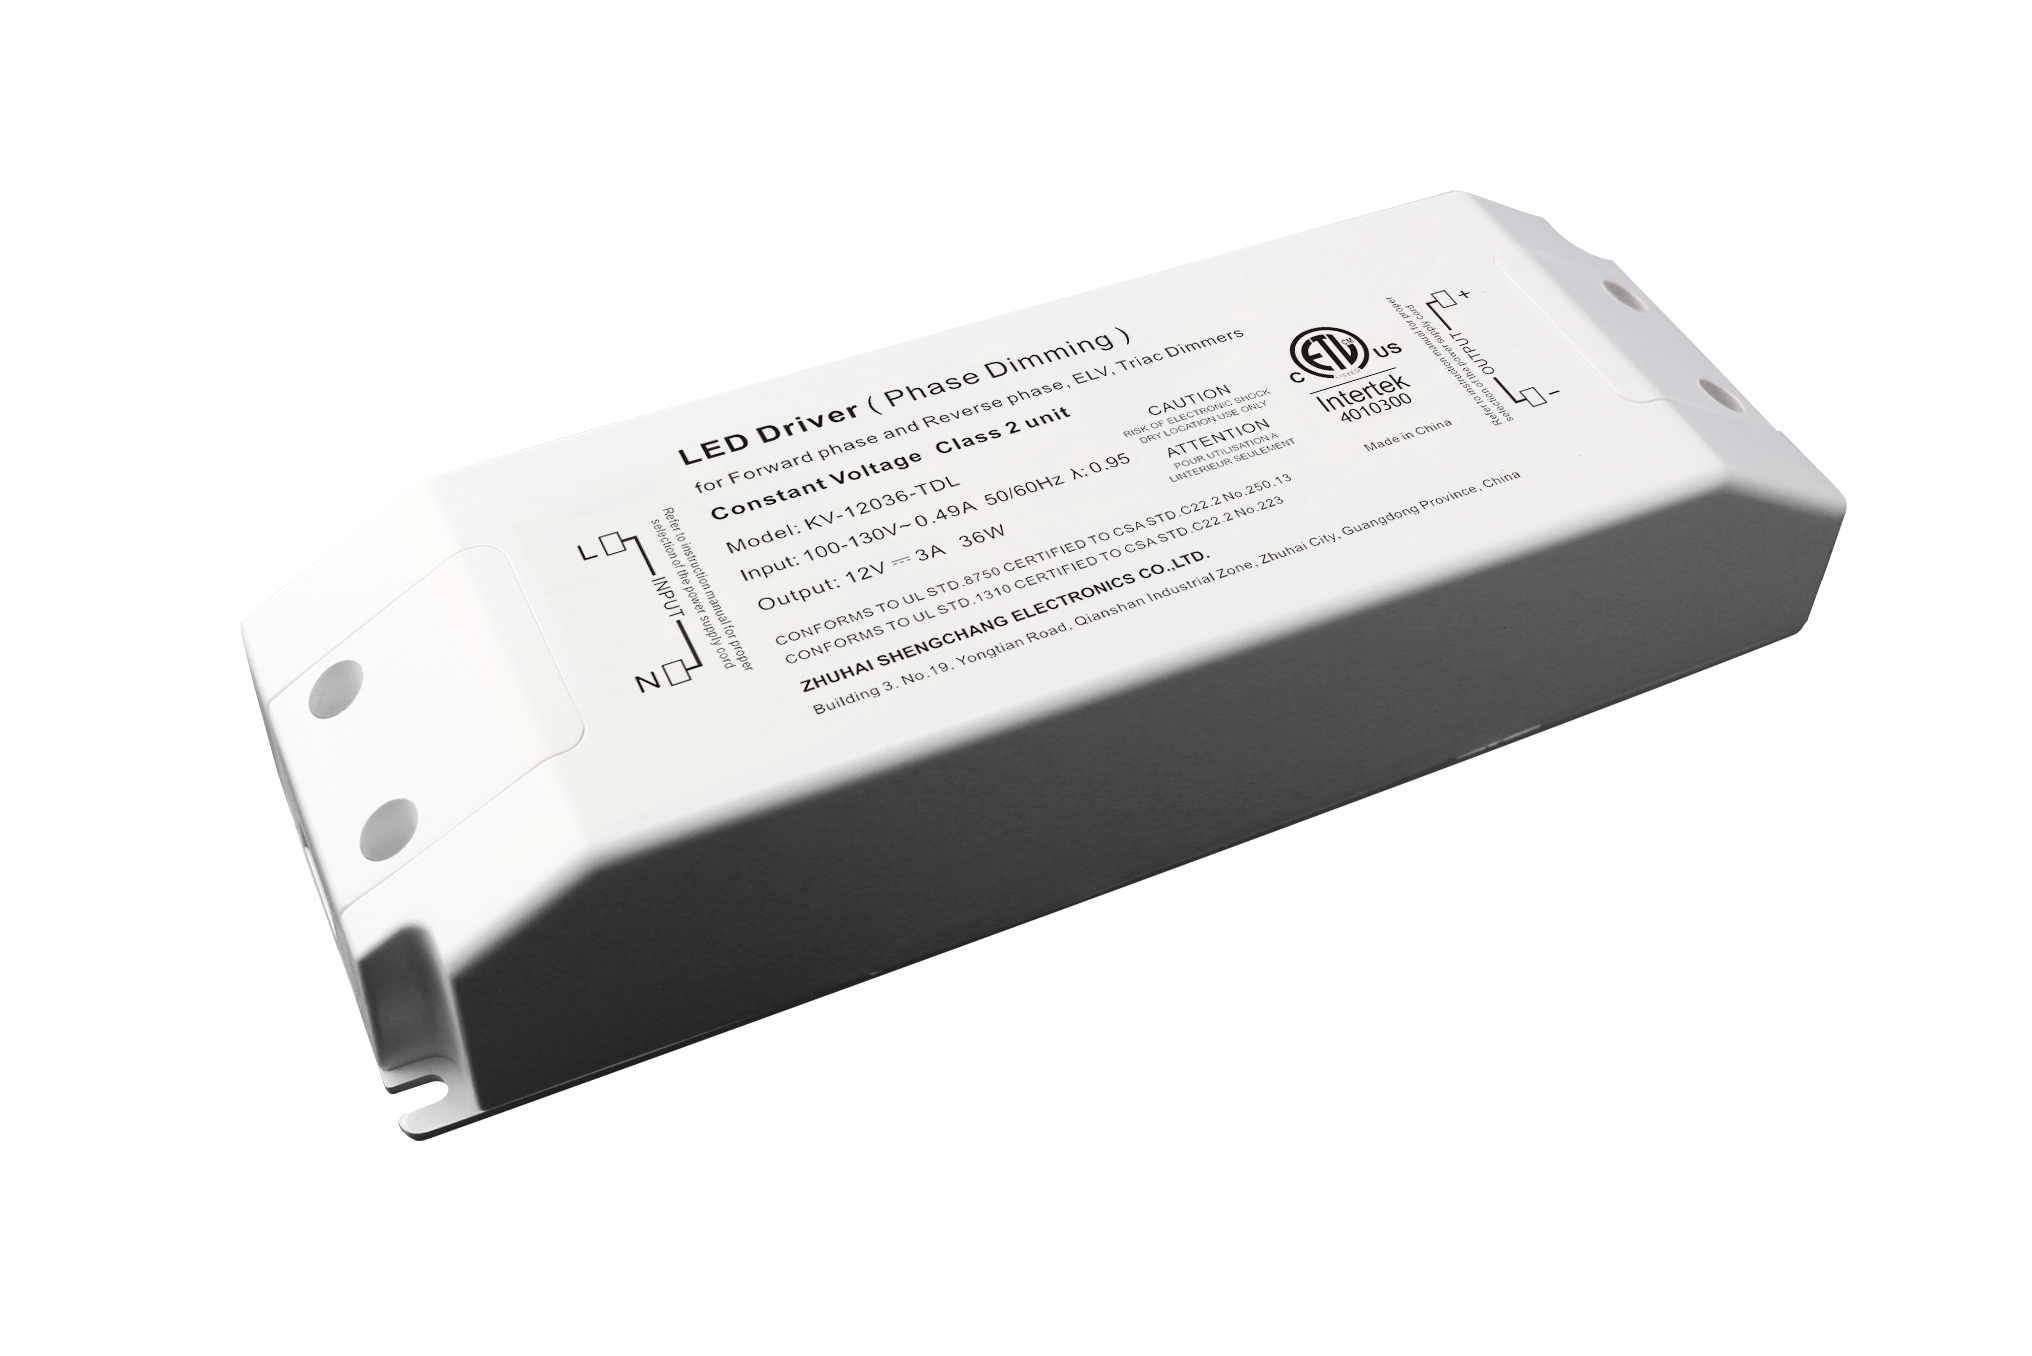 120VAC KV series 36W constant voltage triac LED driver